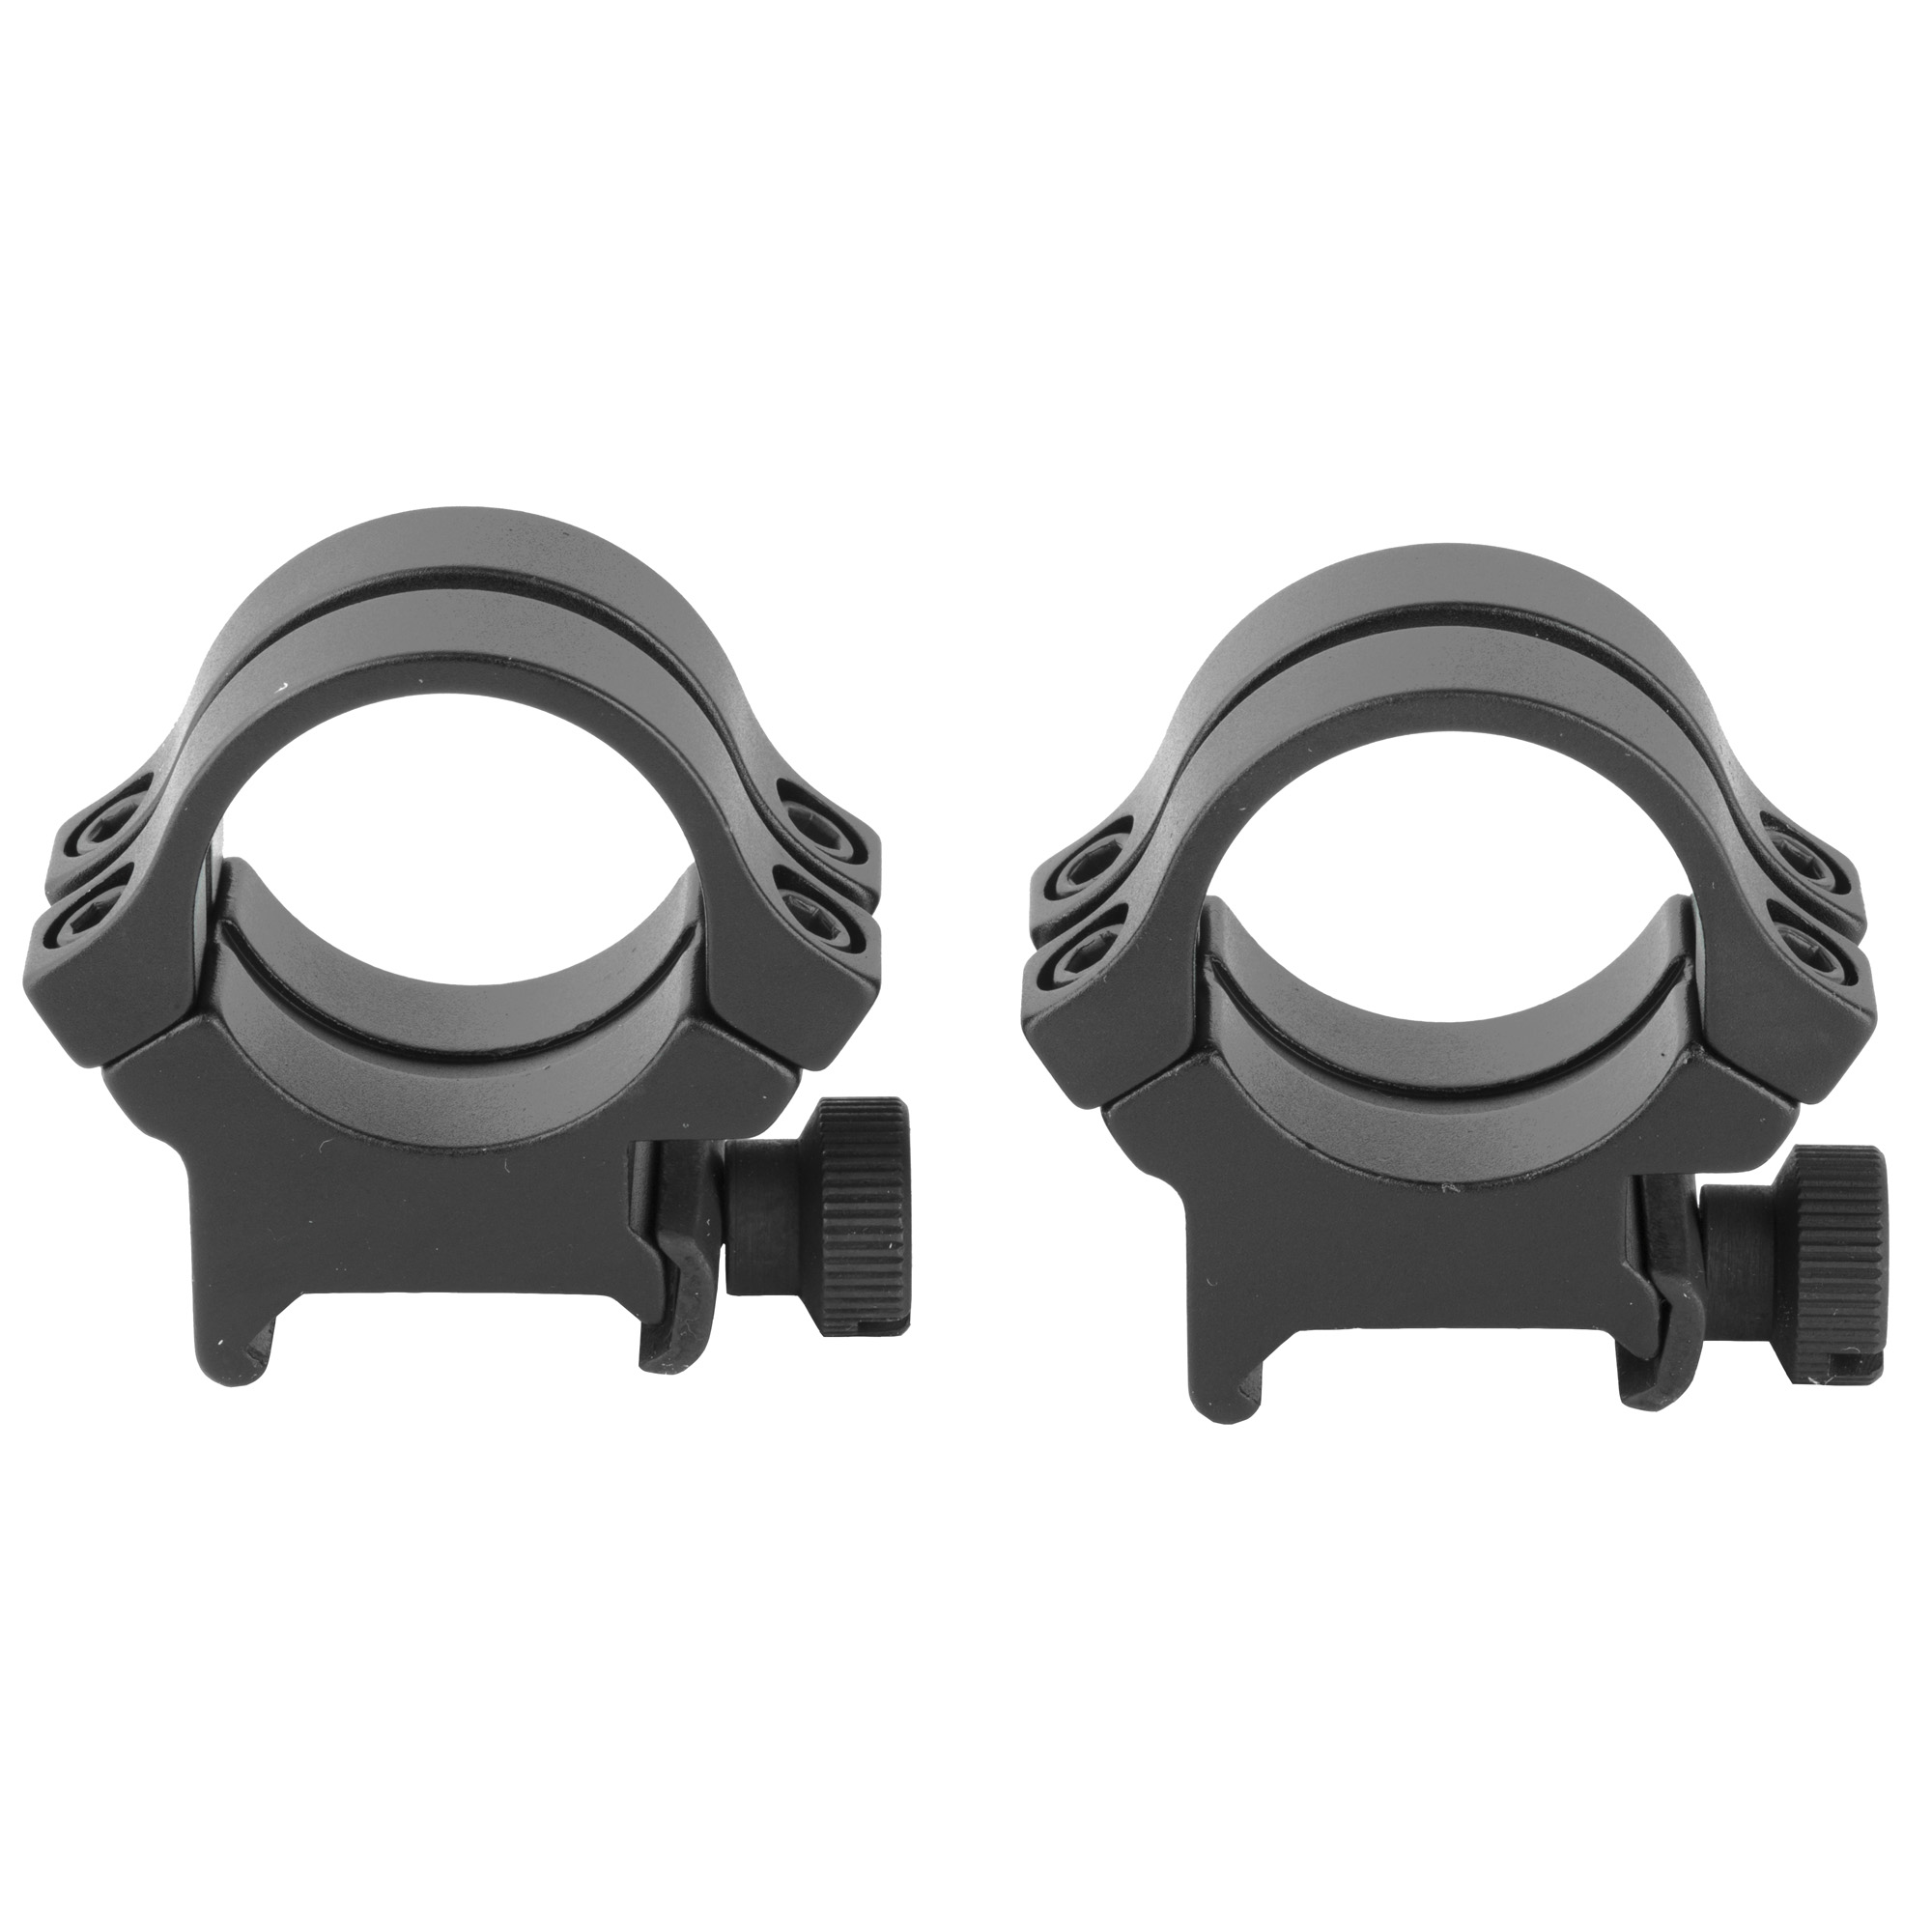 """These rings feature two straps and four screws for added gripping power for these lightweight"""" all aircraft aluminum rings. Weaver legendary quality at a modest price."""